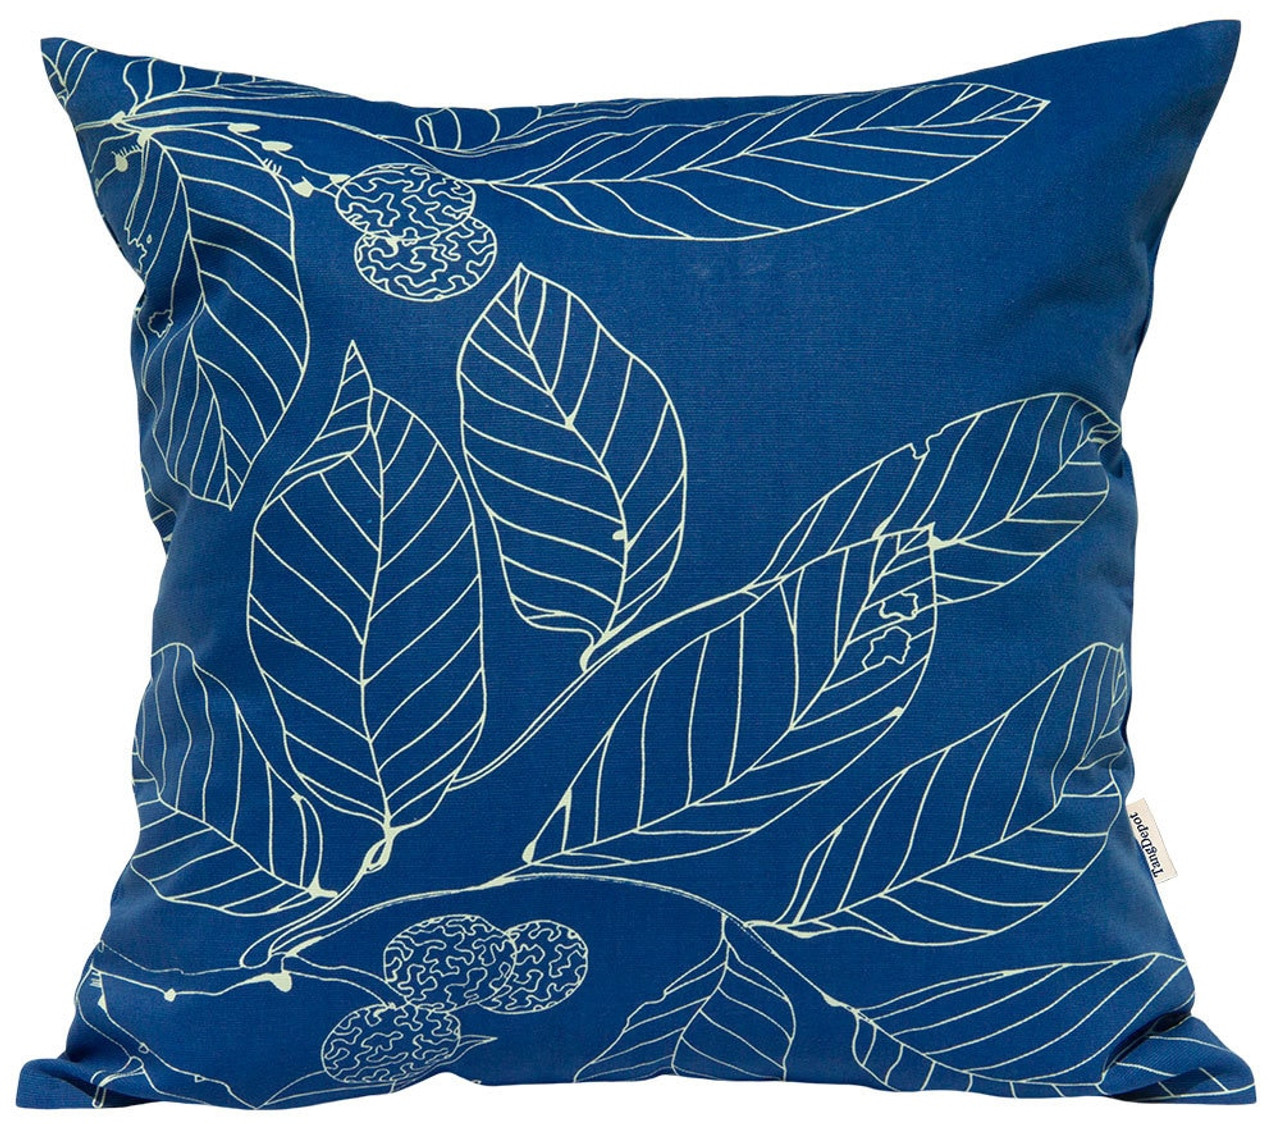 TangDepot 100% Cotton Decorative Handmade Floral Leaf Throw Pillow Cover /Pillow Sham /Cushion Cover, 11 Size options